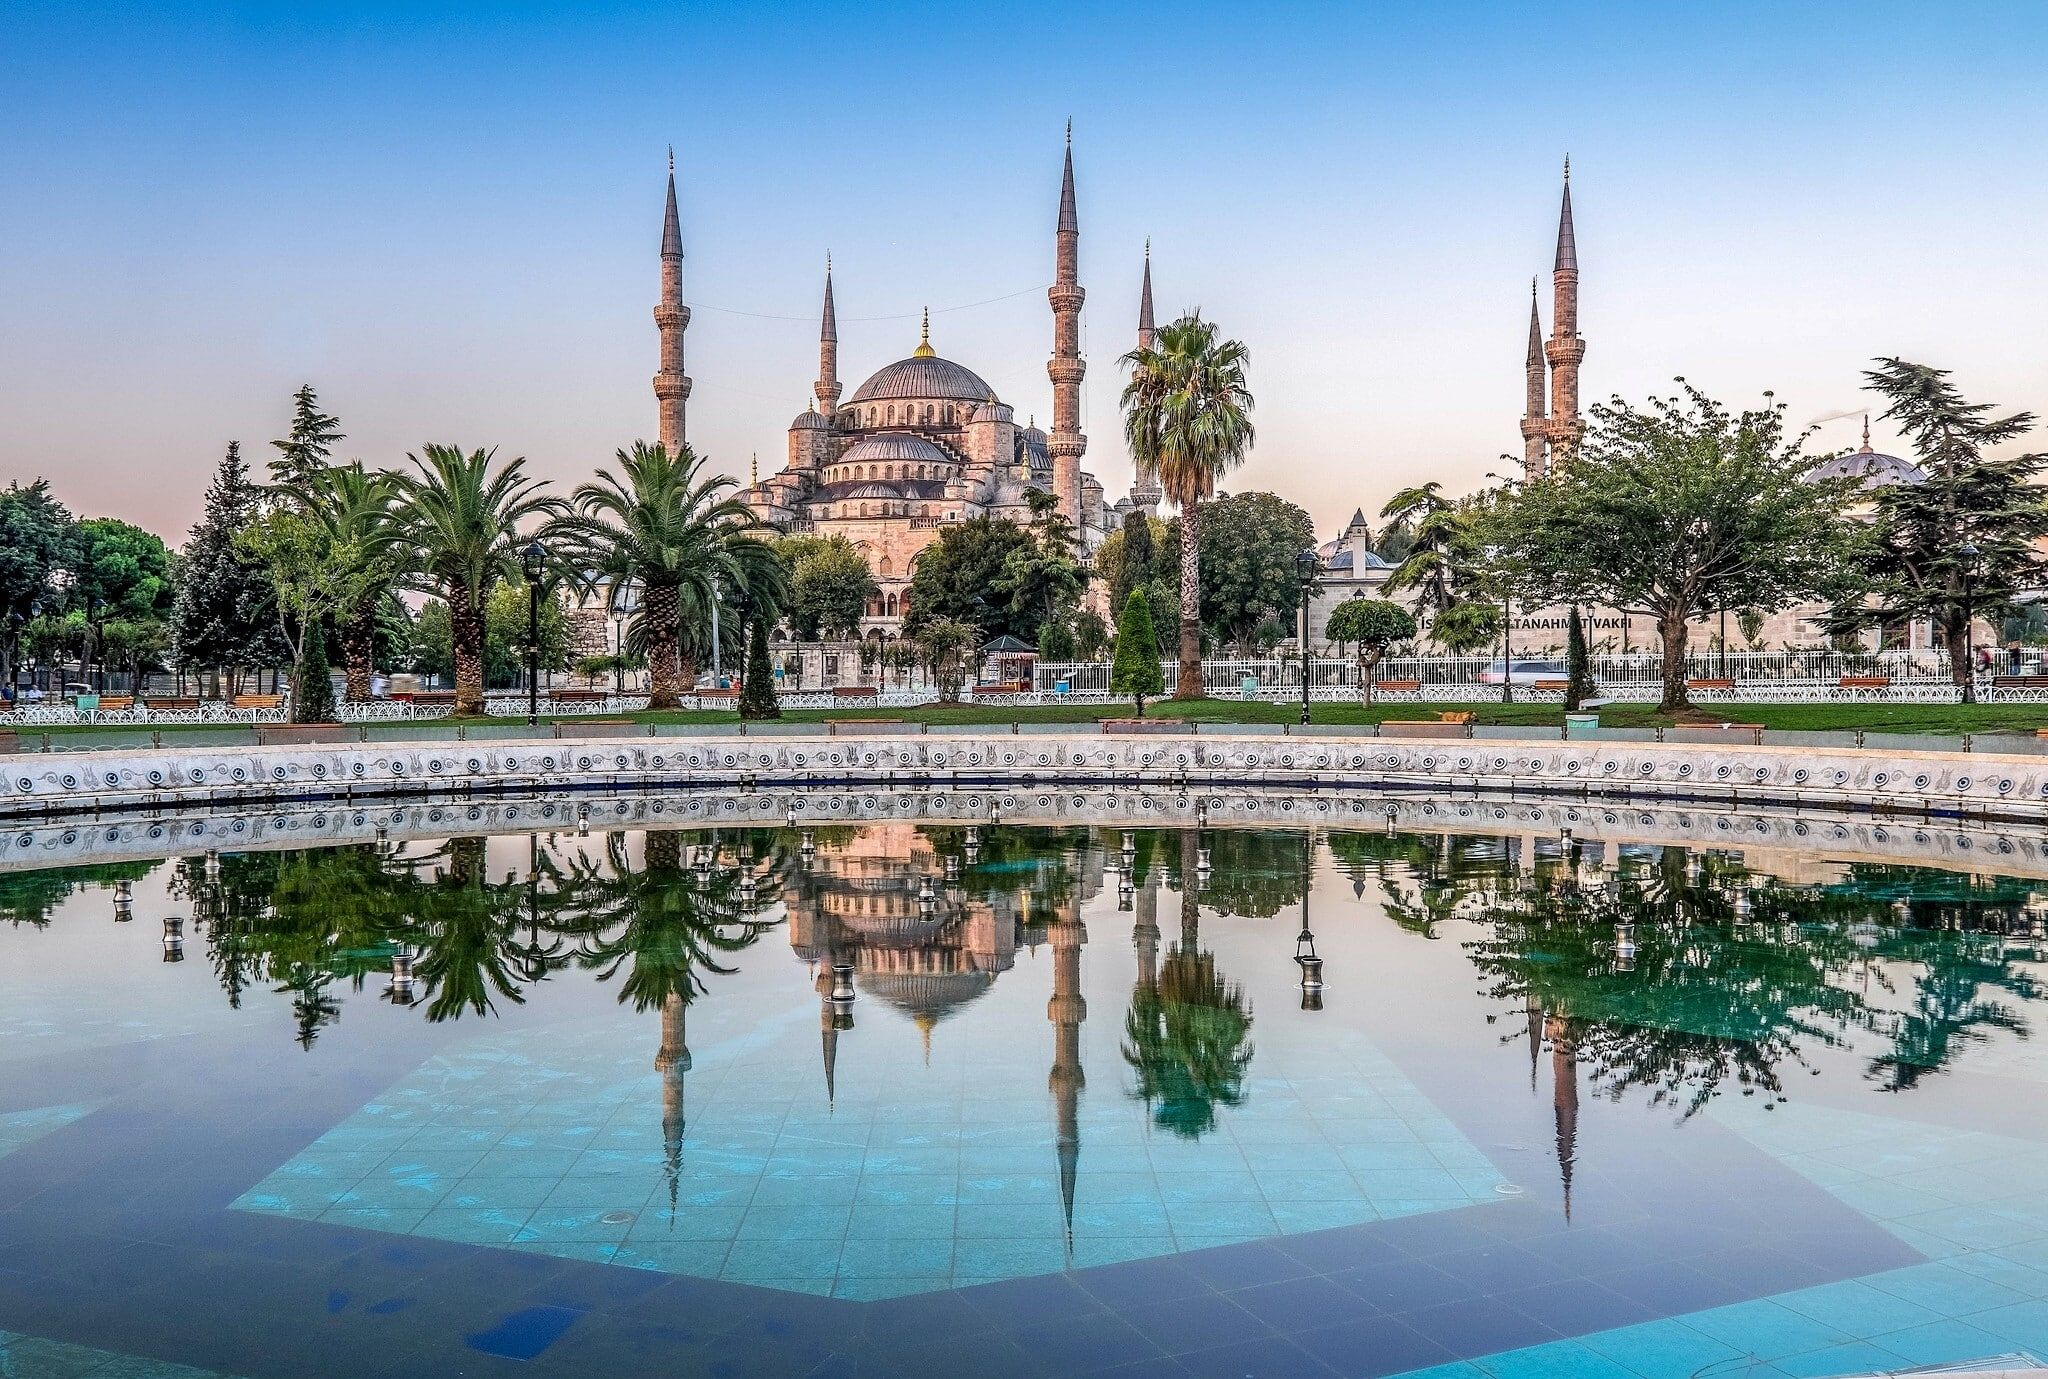 Architecture Cityscape Istanbul Turkey Sultan Ahmed Mosque Palm Trees Water Tiles Reflection Park 1080p Wallpa Blue Mosque Istanbul Wallpaper Mosque